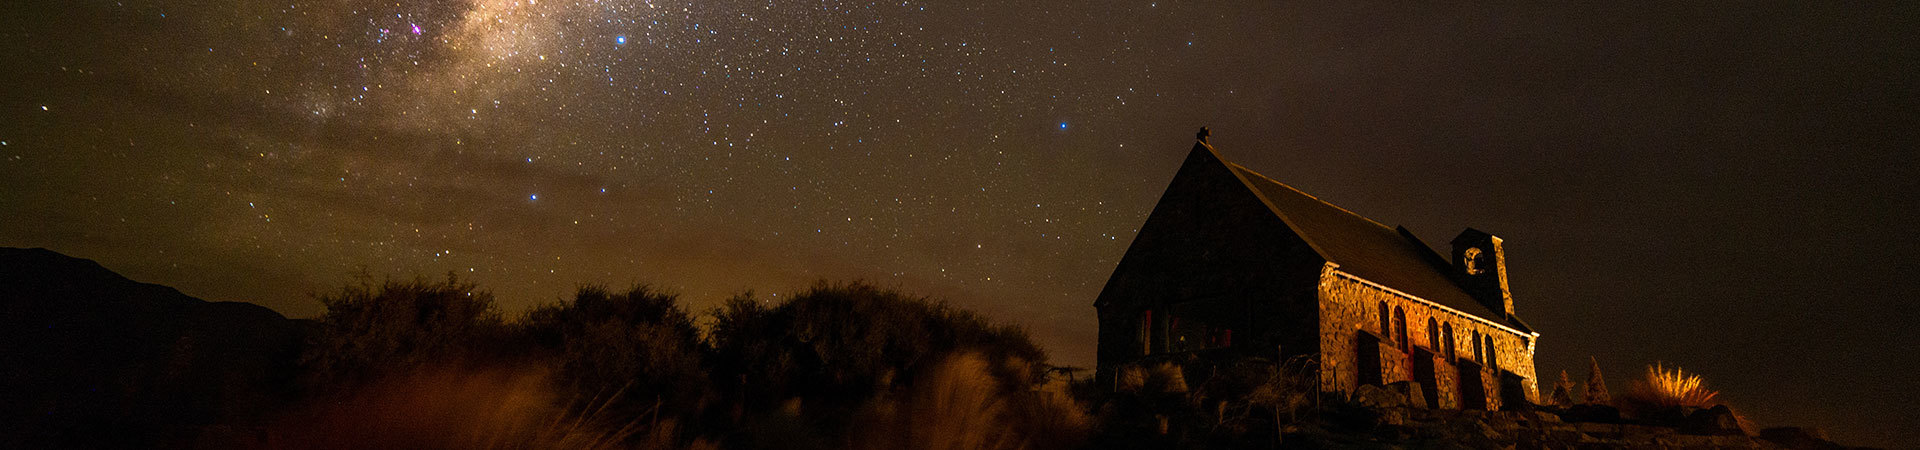 Church of the Good Shepherd nightscape, Mt Cook National Park